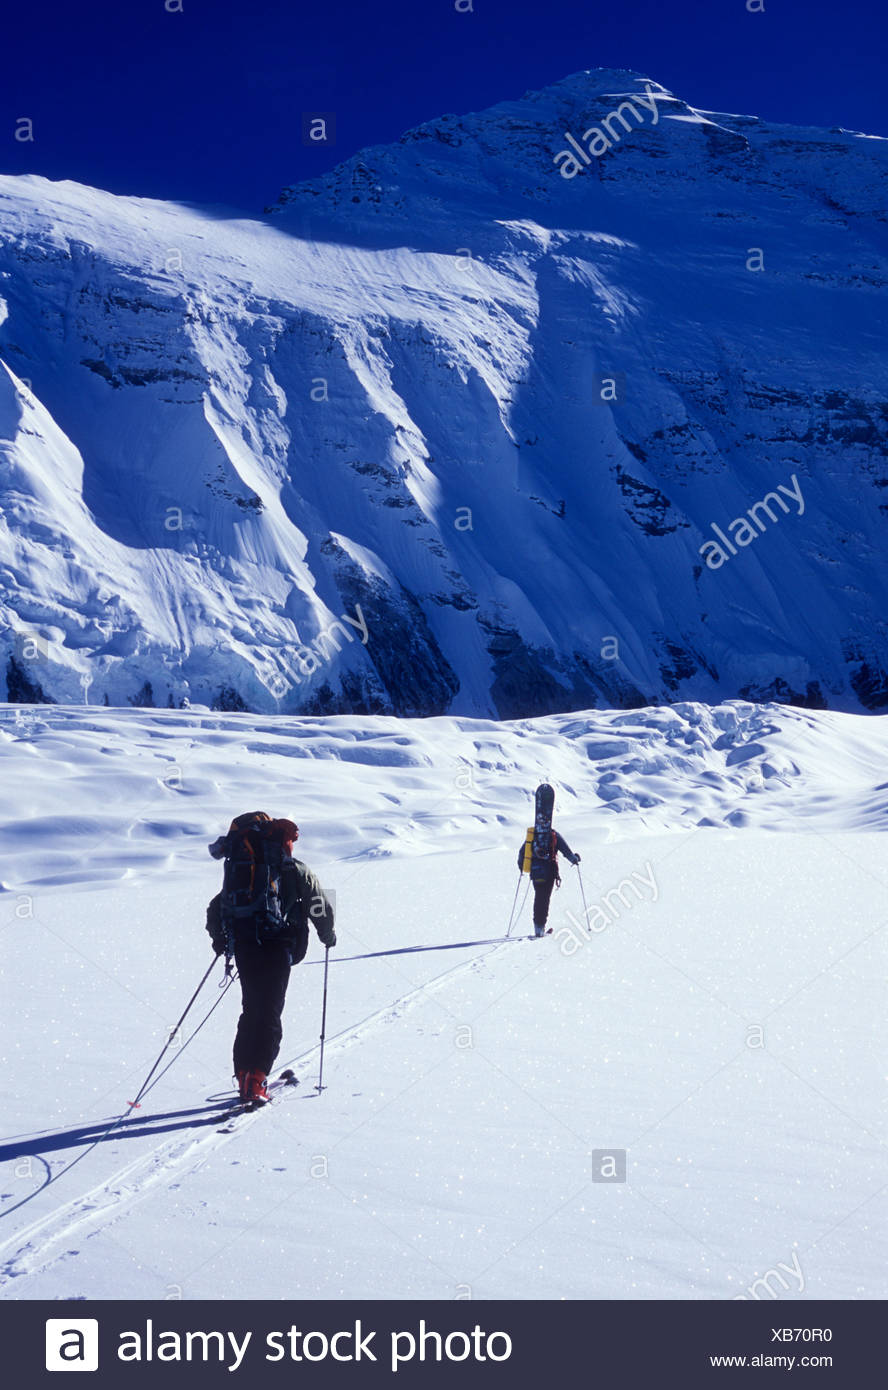 Two men ski touring under sunny skies in the shadow of the north face of Mount Everest. Stock Photo